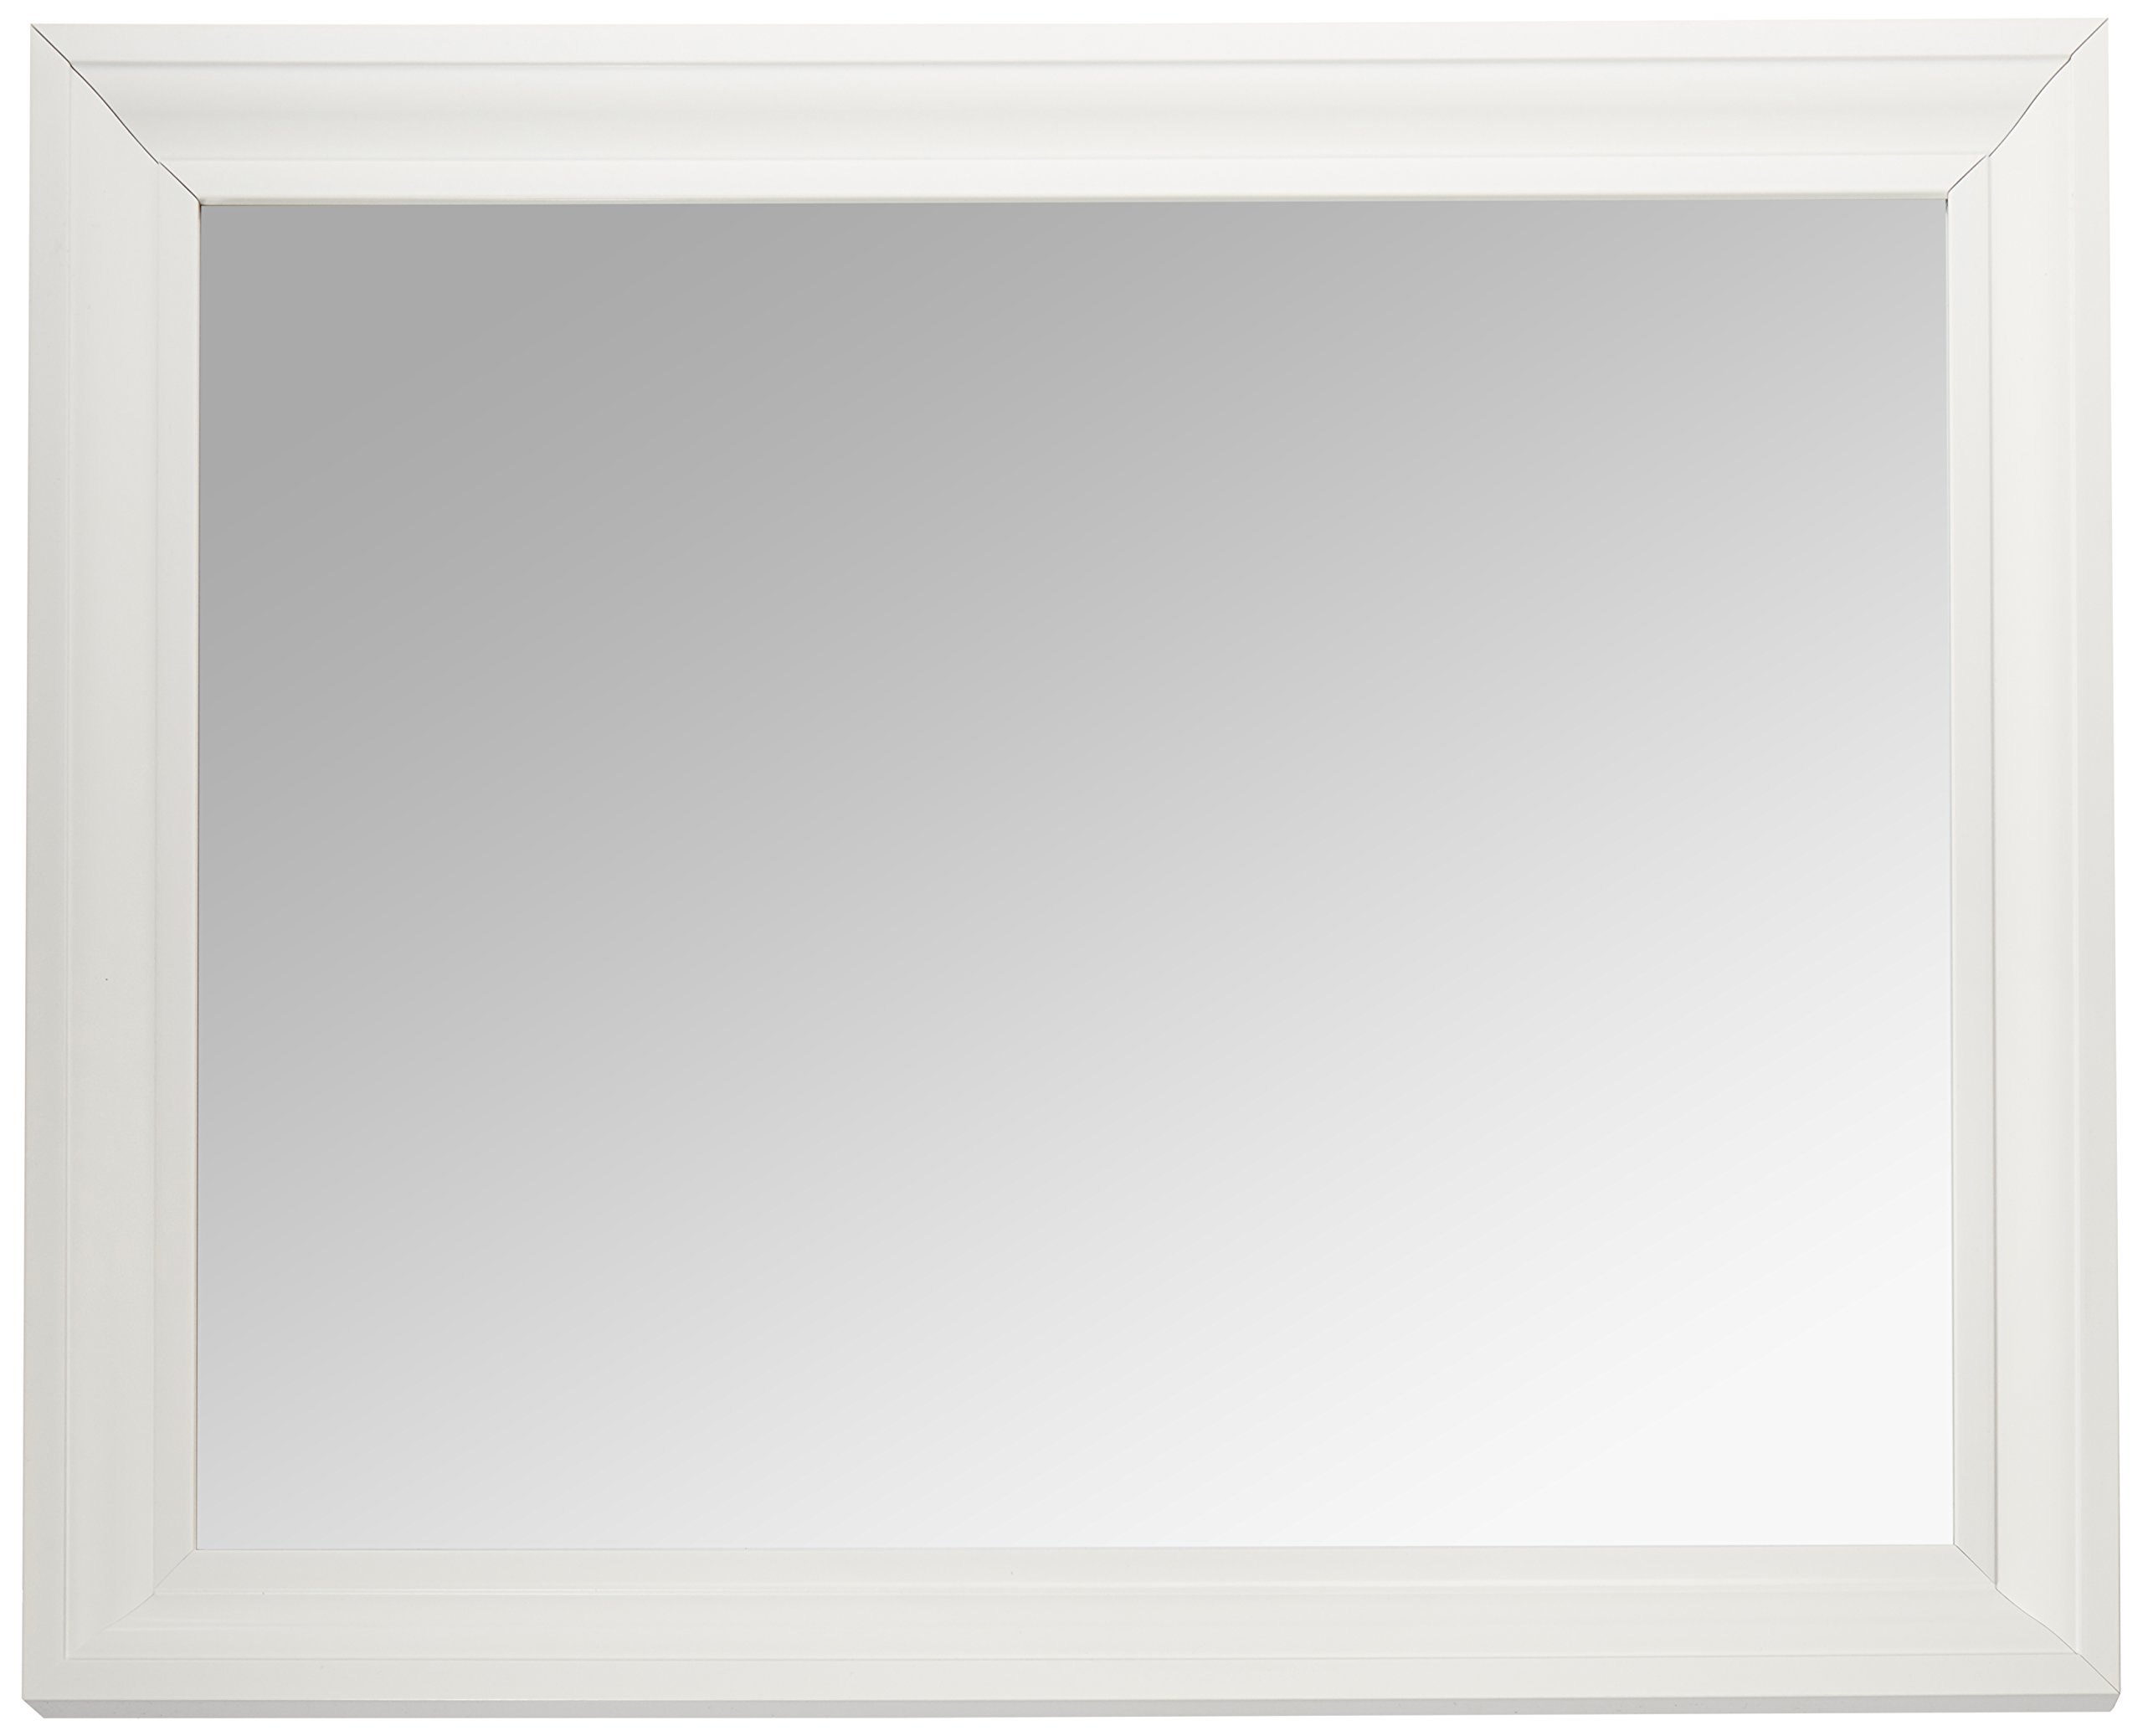 MCS 21.5x27.5 Inch Rectangular Wall Mirror, 26.5x32.5 Inch Overall Size, White (20453) by MCS